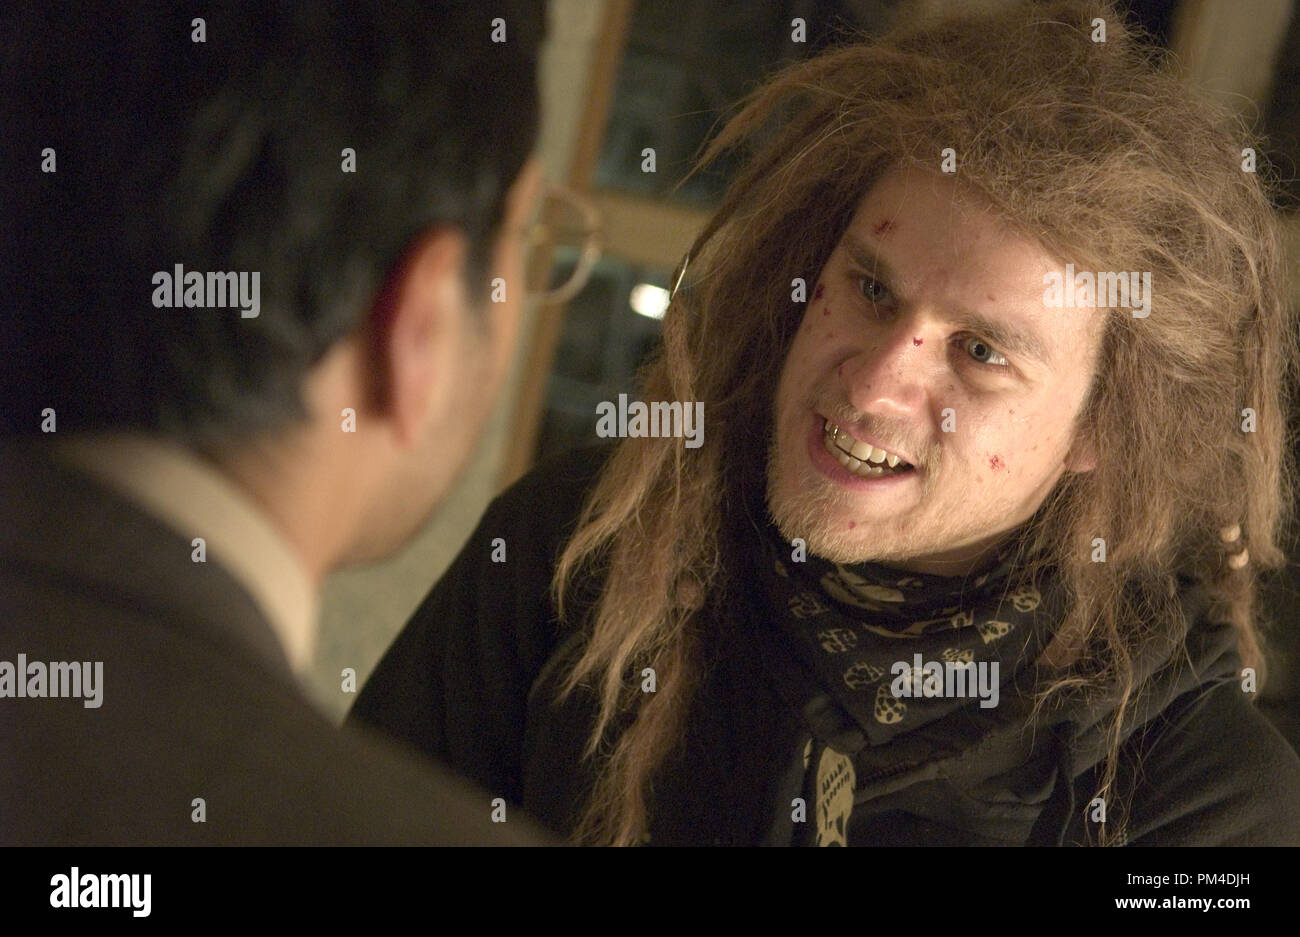 Film Still / Publicity Still from 'Children of Men' © 2006 Universal Pictures   File Reference # 30737614THA  For Editorial Use Only -  All Rights Reserved - Stock Image